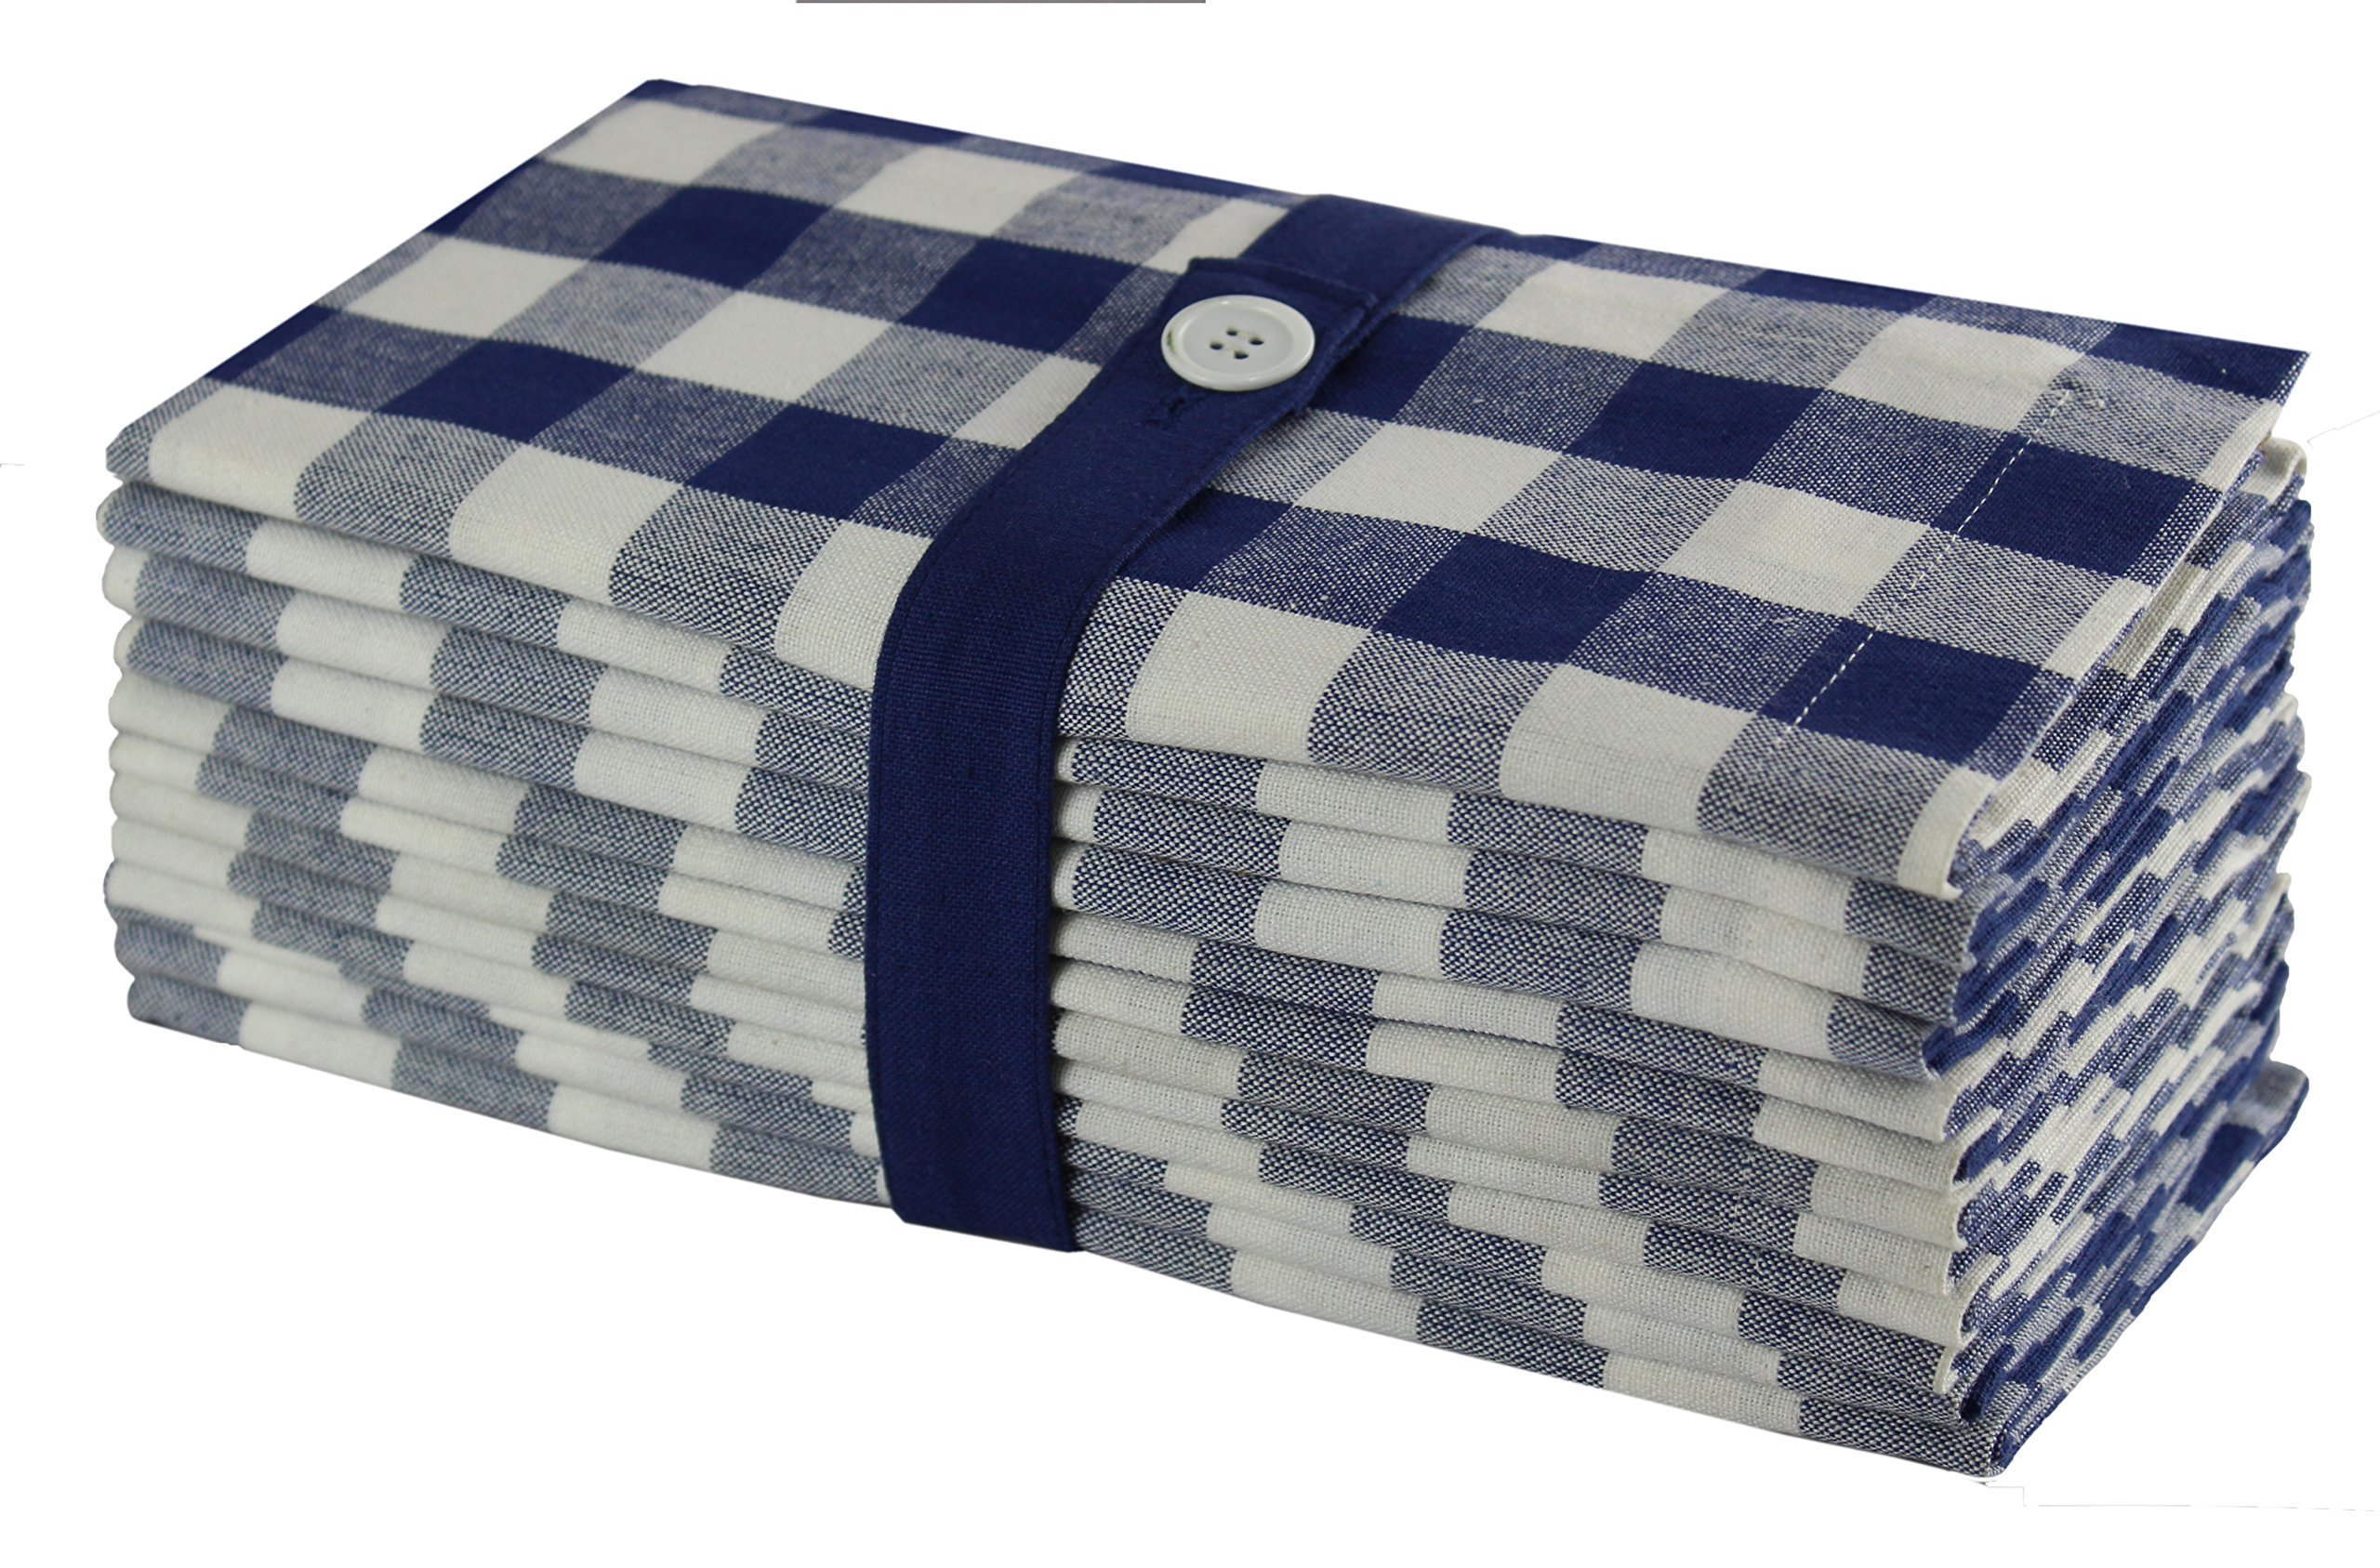 Cotton Craft 12 Pack Gingham Checks Oversized Dinner Napkins - Navy - Size 20x20-100% Cotton - Tailored with Mitered Corners and a Generous Hem - Easy Care Machine wash